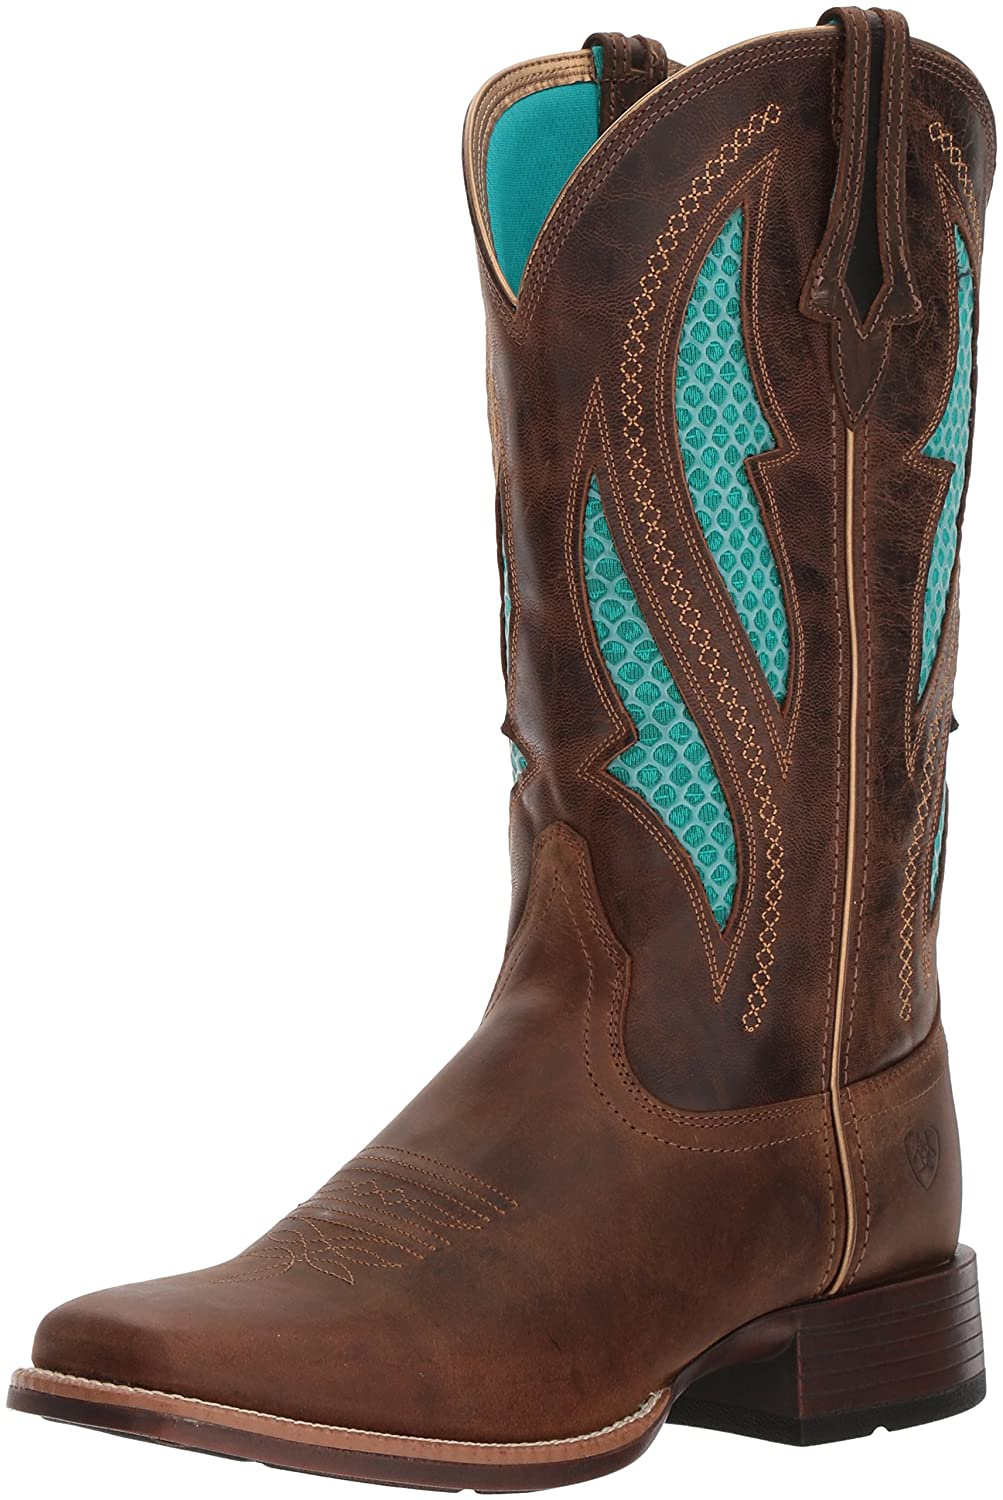 Ariat Women's Venttek Ultra Western Boot B076MD7QTB 9 M US|Distressed Brown/Silly Brown